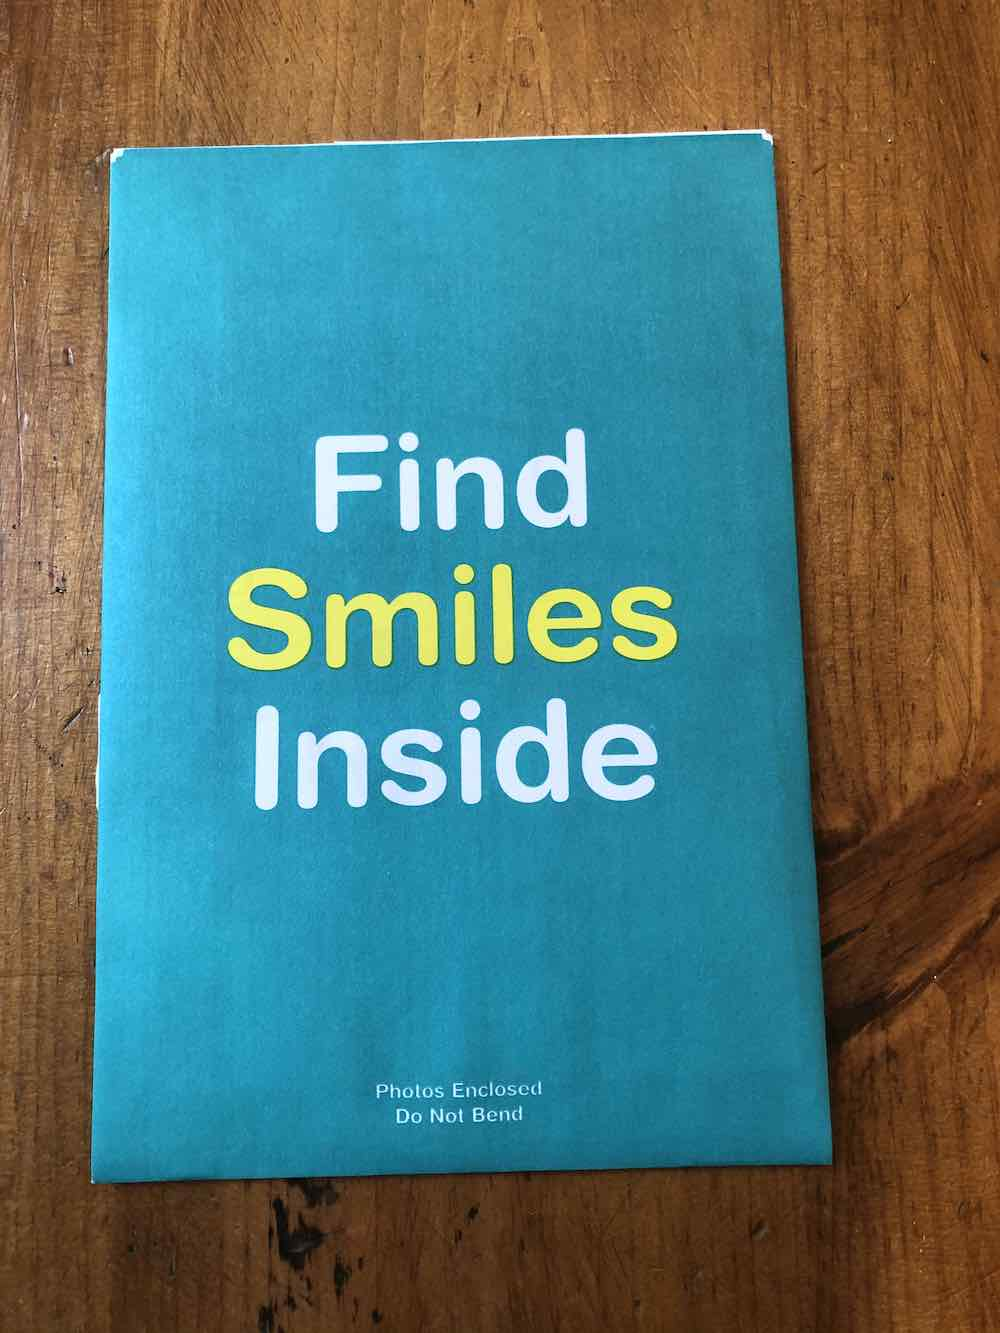 "This envelope is all teal on the back. In a large font taking up about 30% of the envelope, centered, it reads ""Find Smiles Inside"" with Find and Inside in white and Smiles in yellow; each word stacked on top one another. At the very bottom in the center, in white text it reads ""Photos Enclosed Do Not Bend."" Envelope sitting on wood table top."